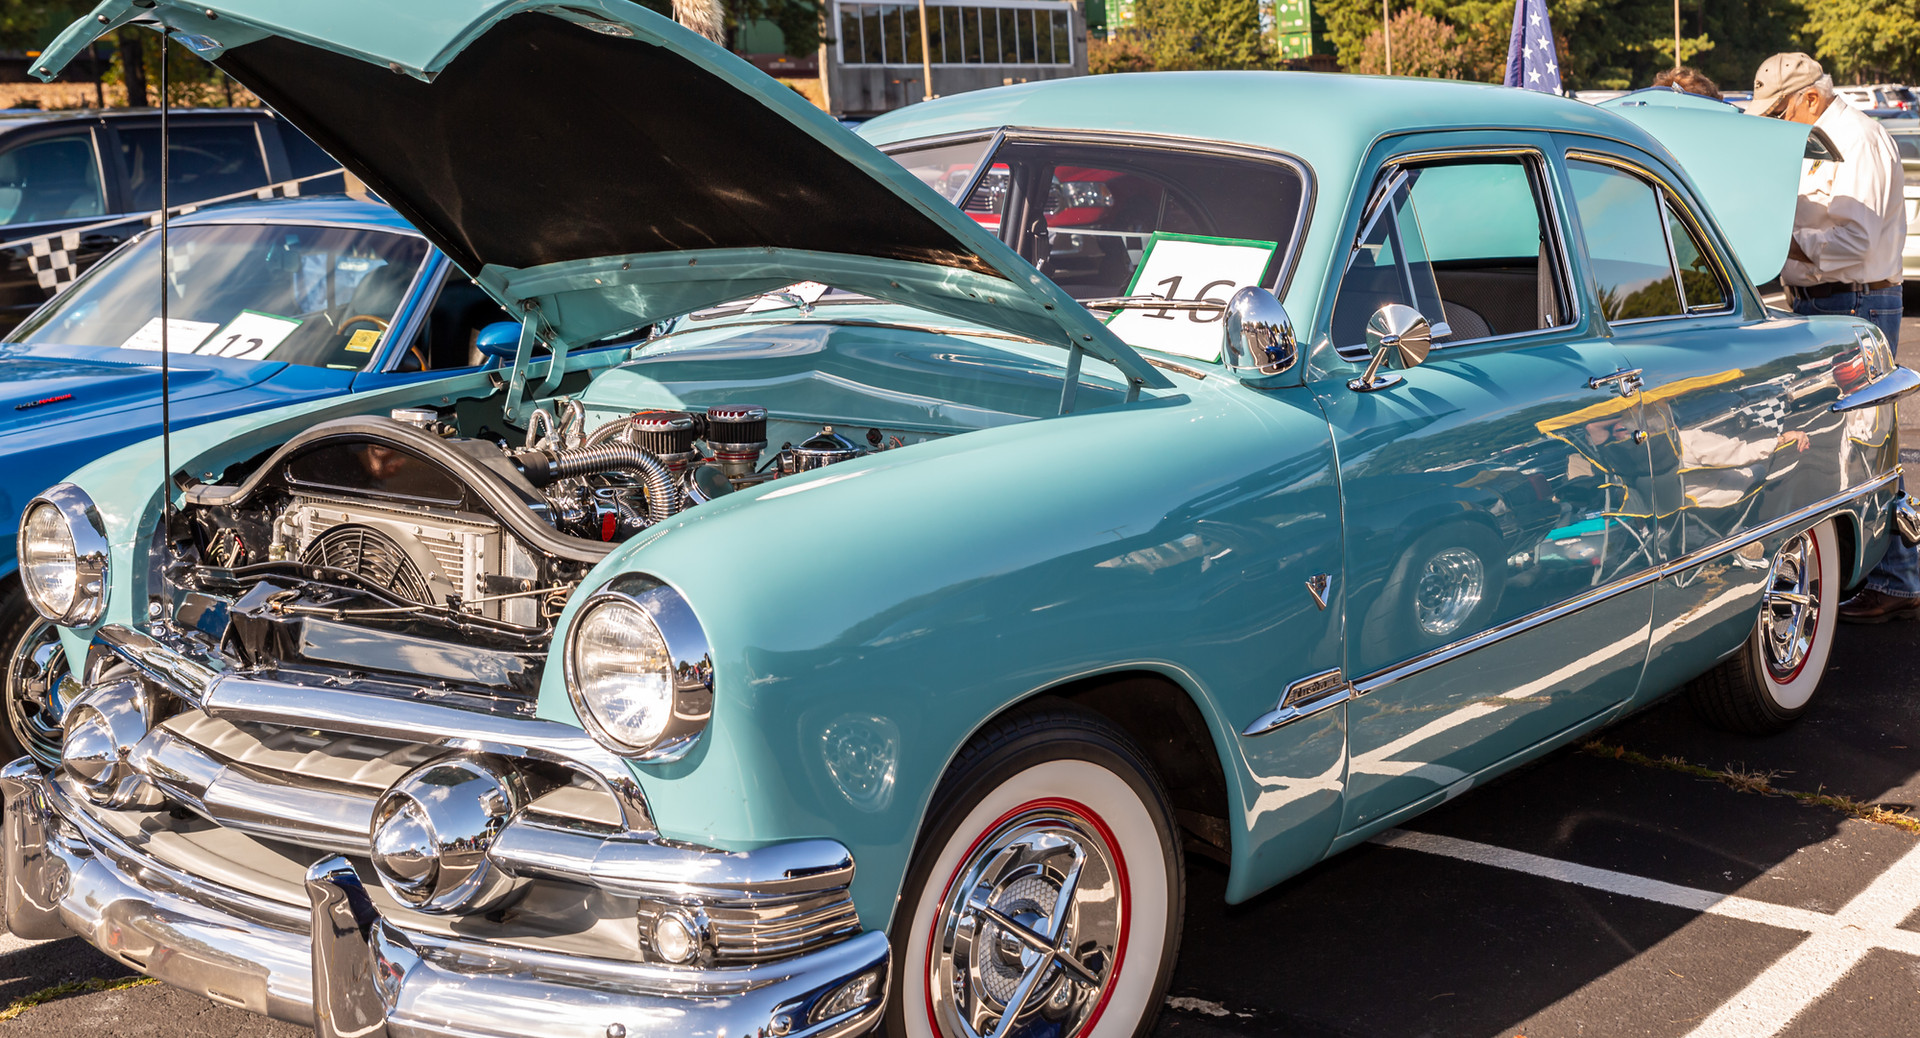 BH Art Fest Car Show 19 (8 of 109).jpg